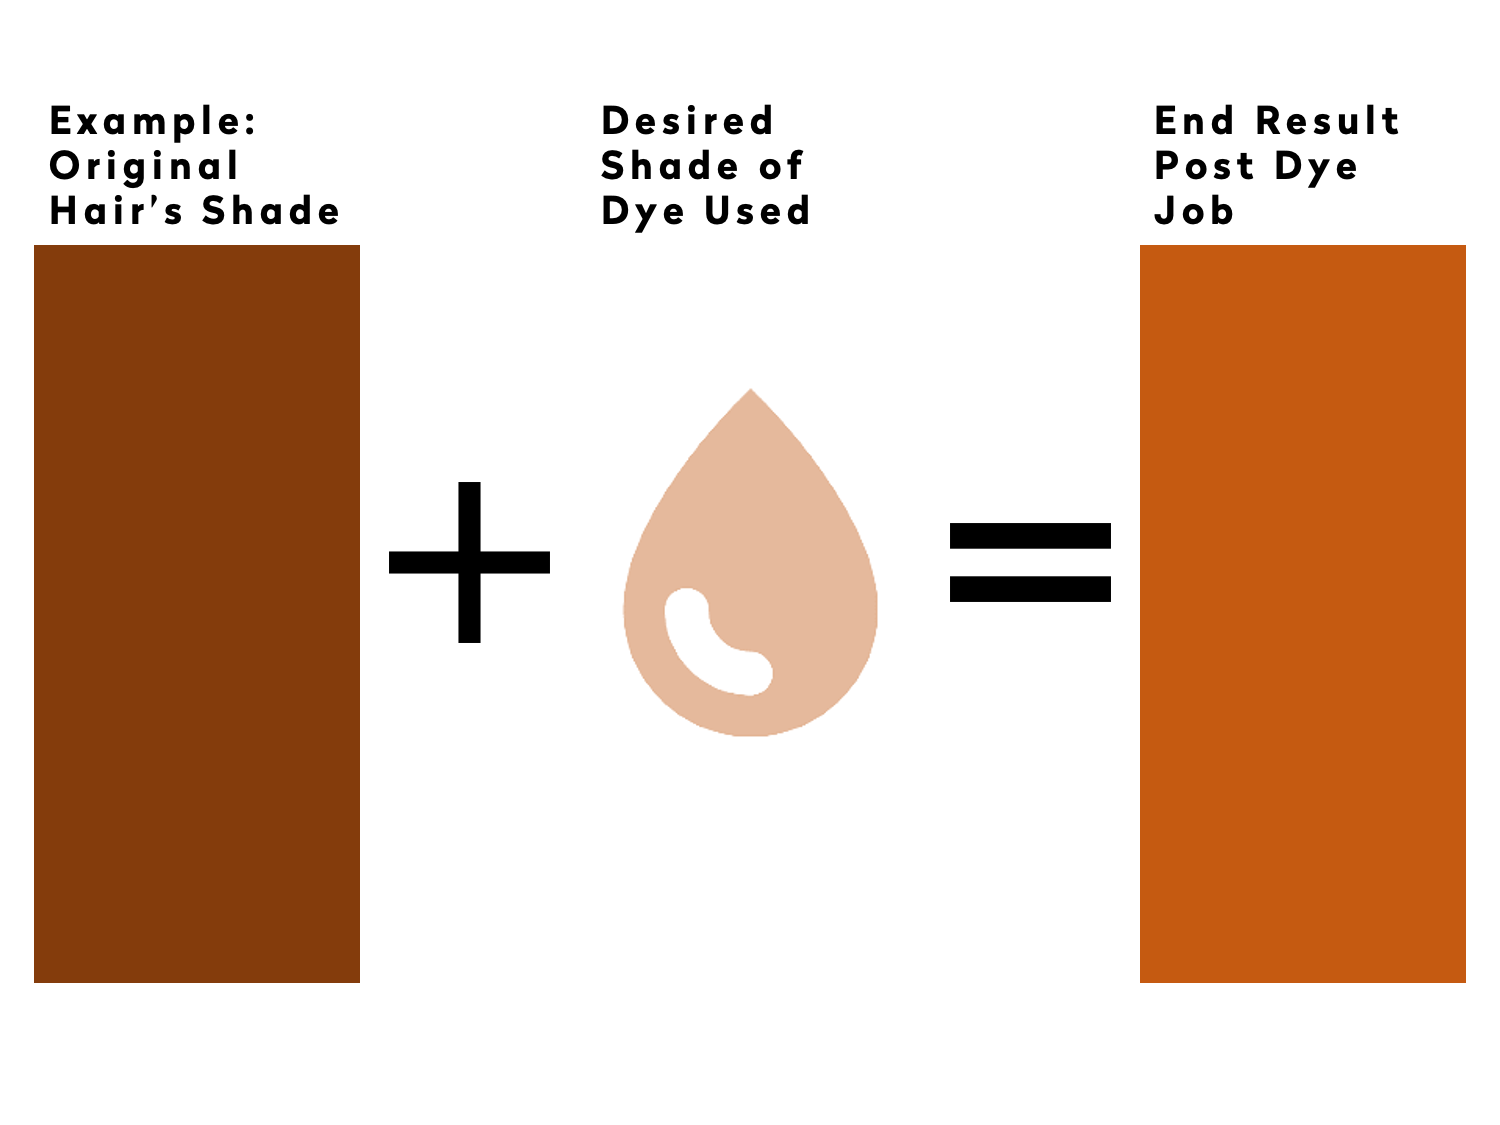 Hair Dyes Cannot Lift Existing Hair Colour Effectively